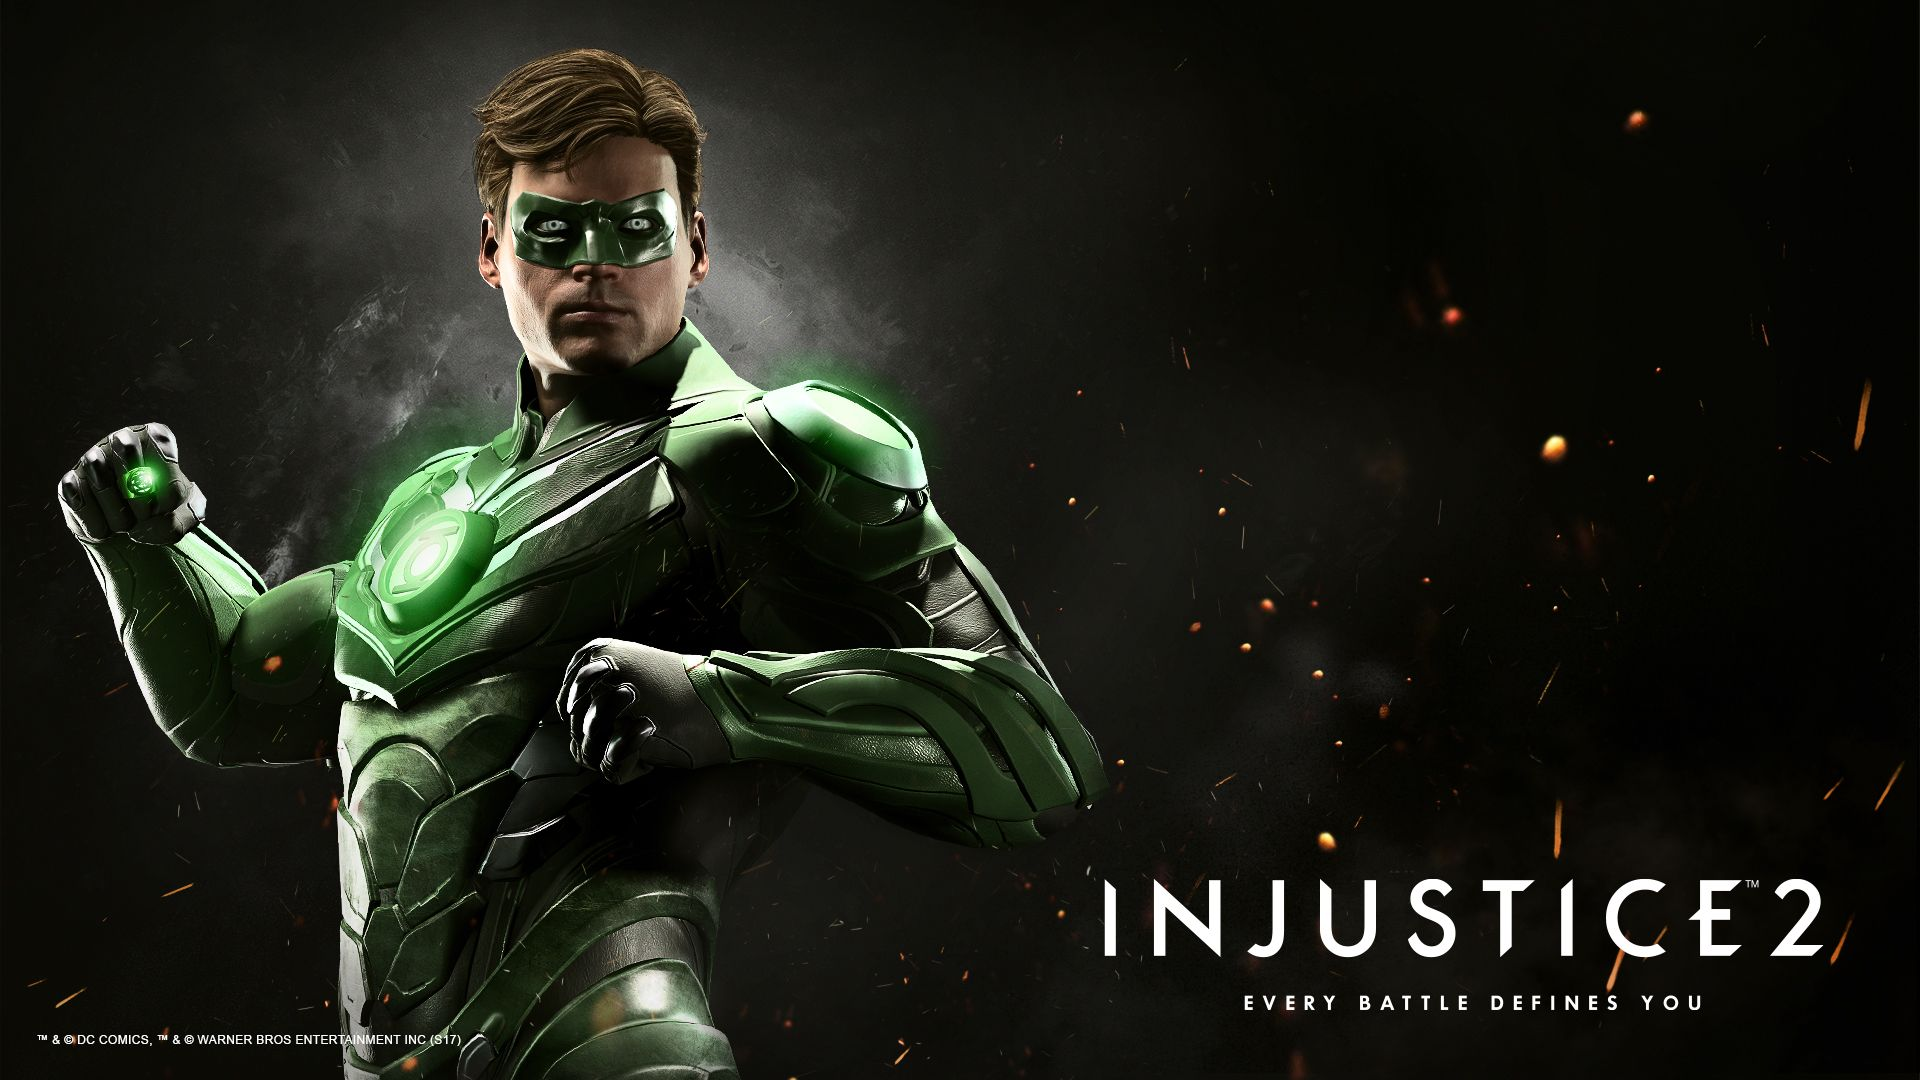 Injustice2 GREEN LANTERN Wallpaper 1920x1080 29